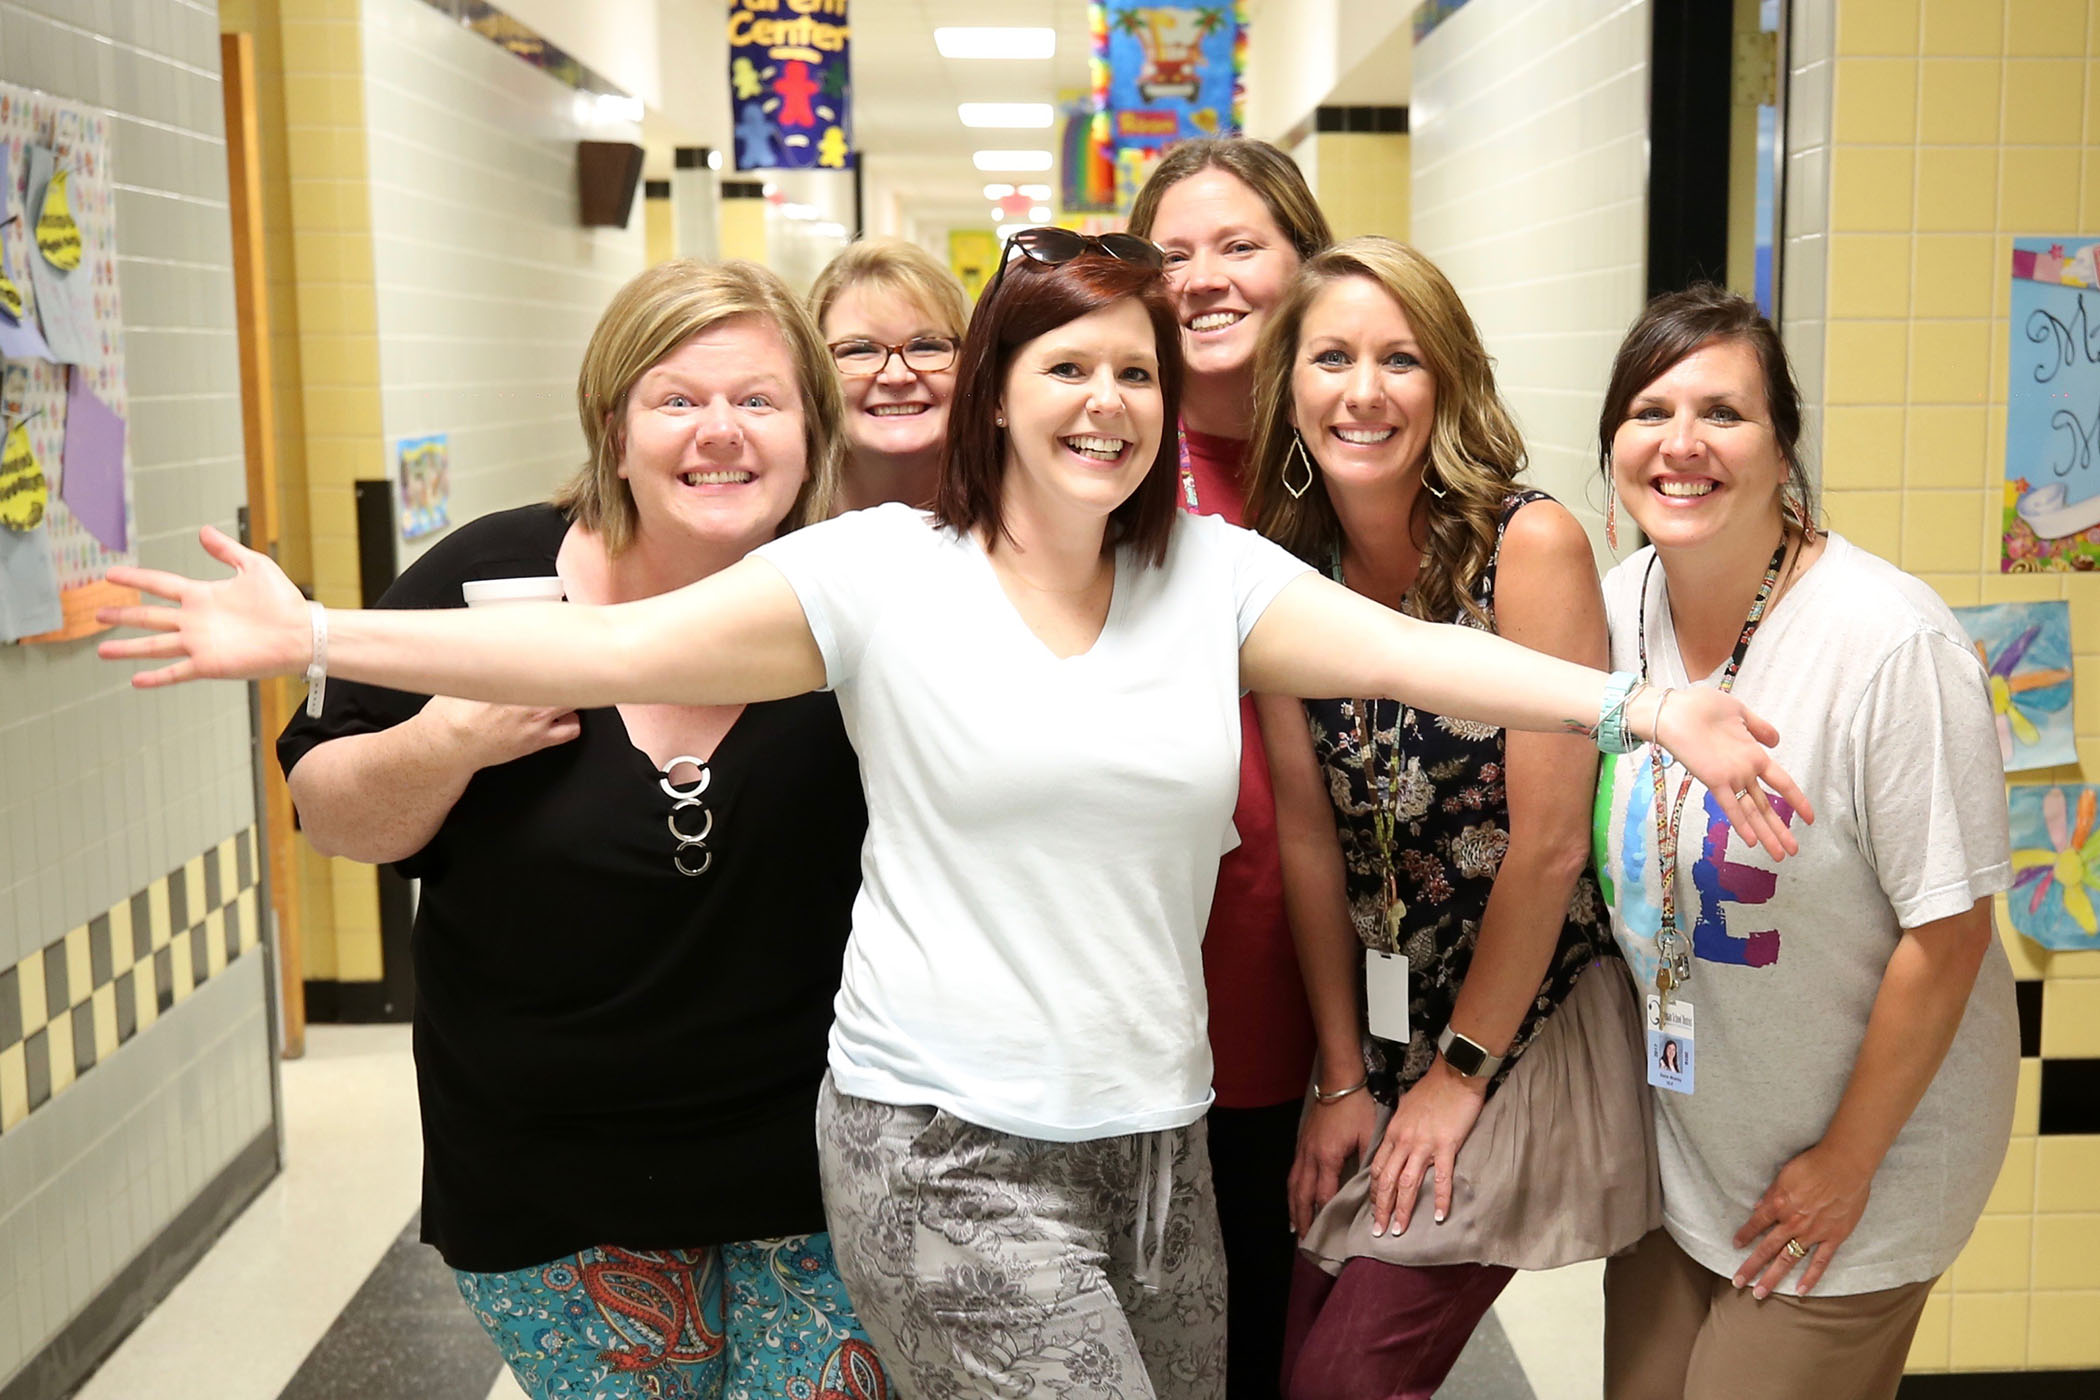 QLE teachers pose in the hallway.